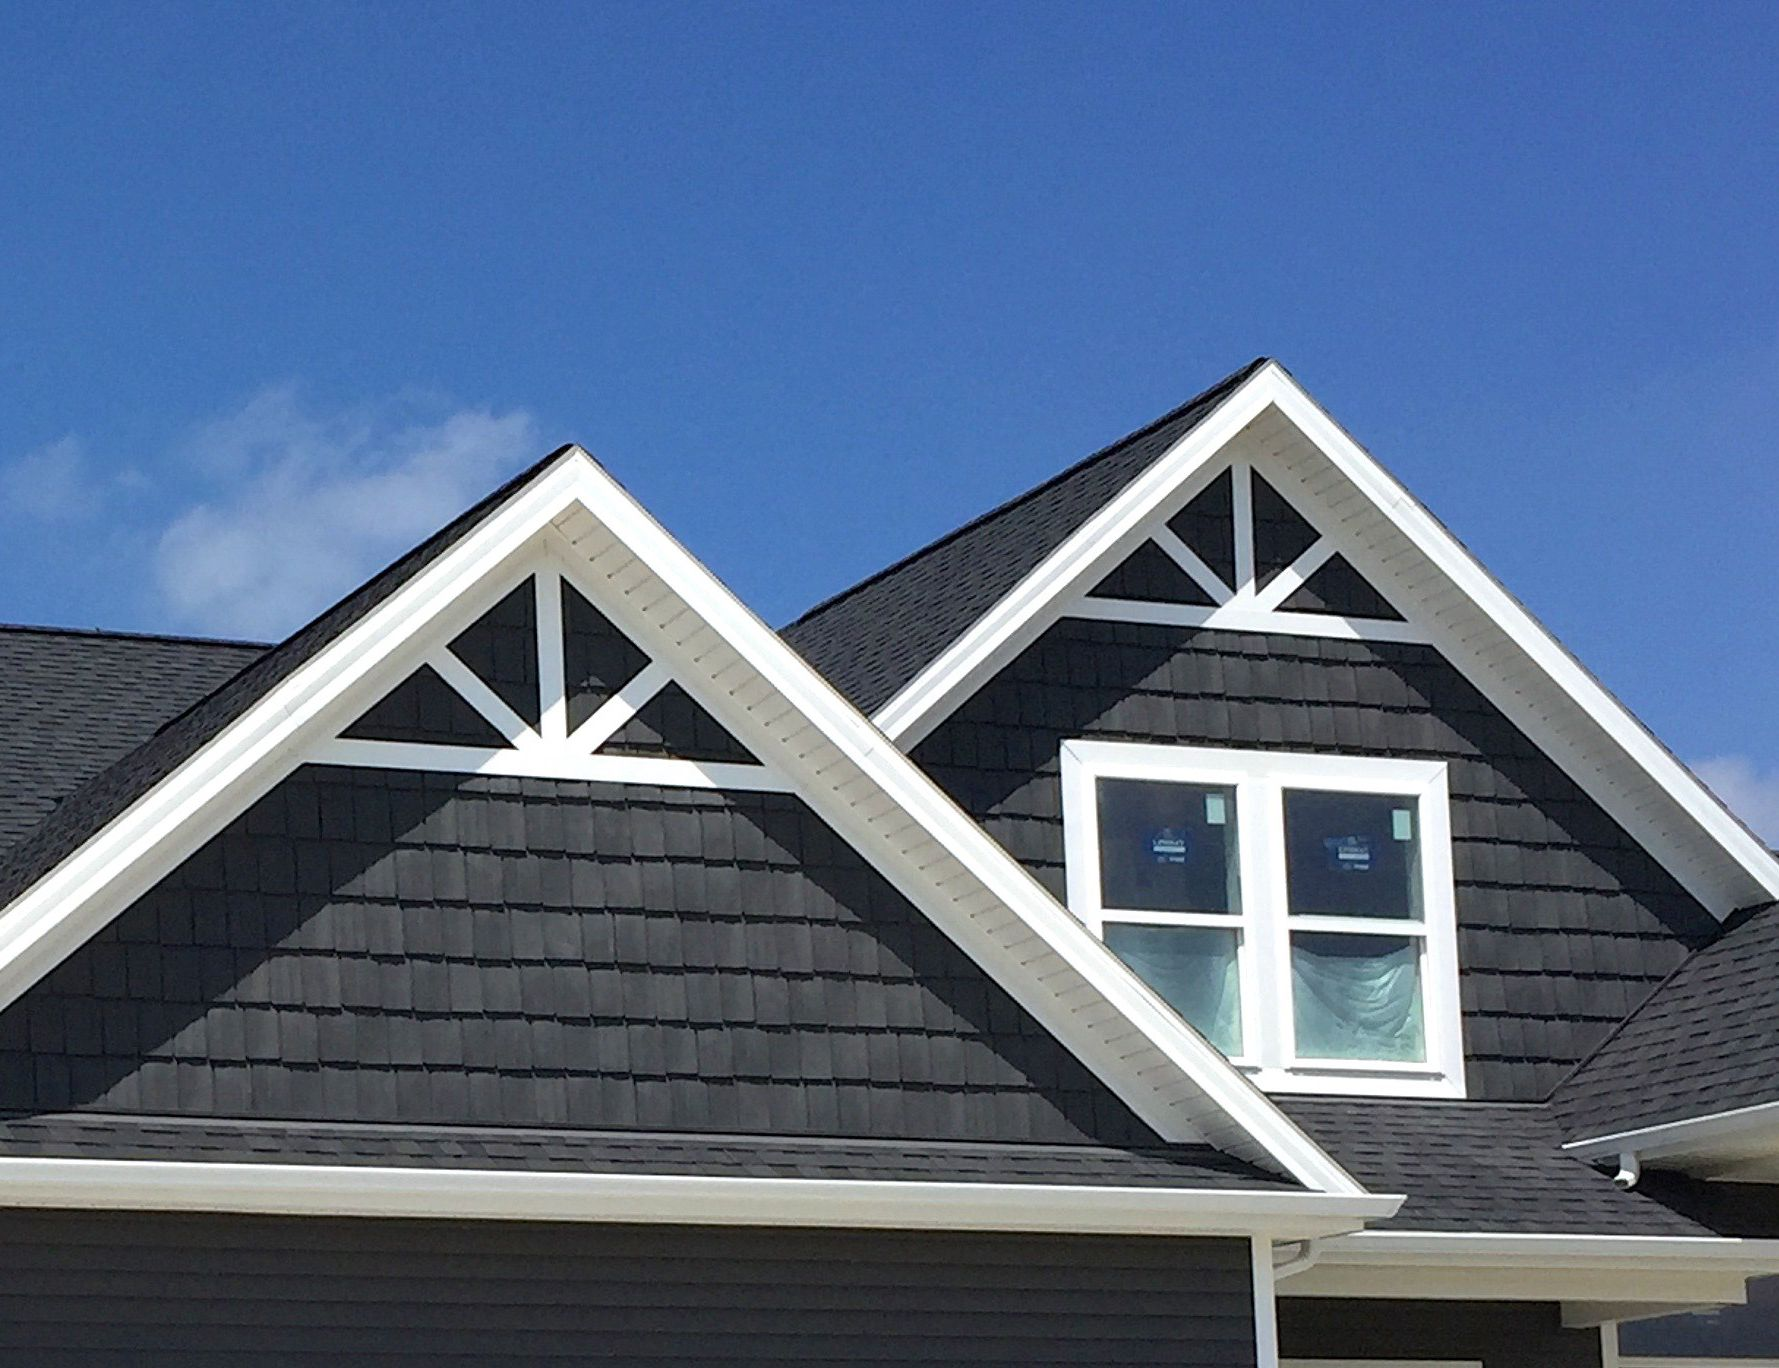 Custom Metal Accents In Gables Sounds And Looks Pricier Than It Actually Is In 2020 Ranch House Exterior Grey Siding House Gray House Exterior